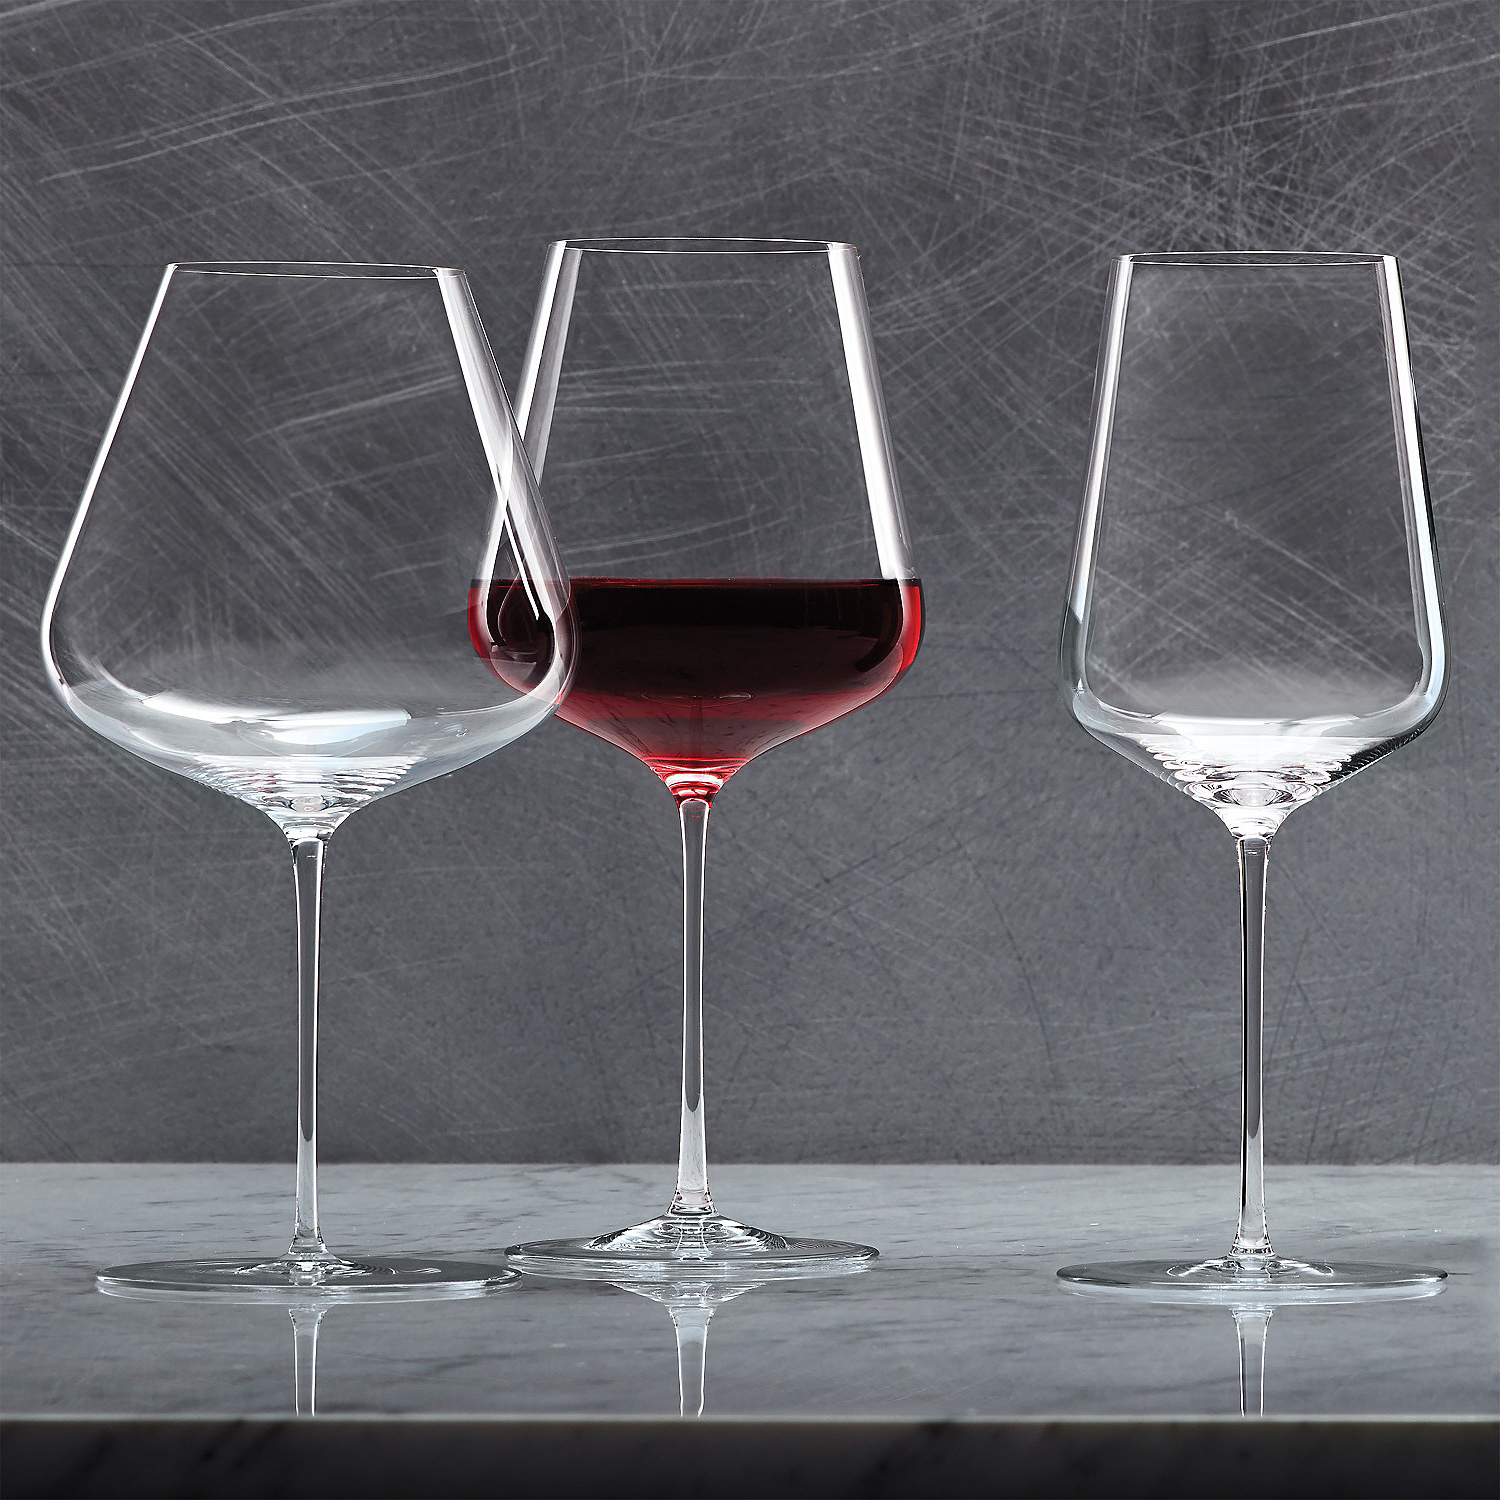 Trendy Zalto Denk'art Three Pack Wine Glass Set – Wine Enthusiast With Regard To Three Glass Holder Wall Decor (View 18 of 20)